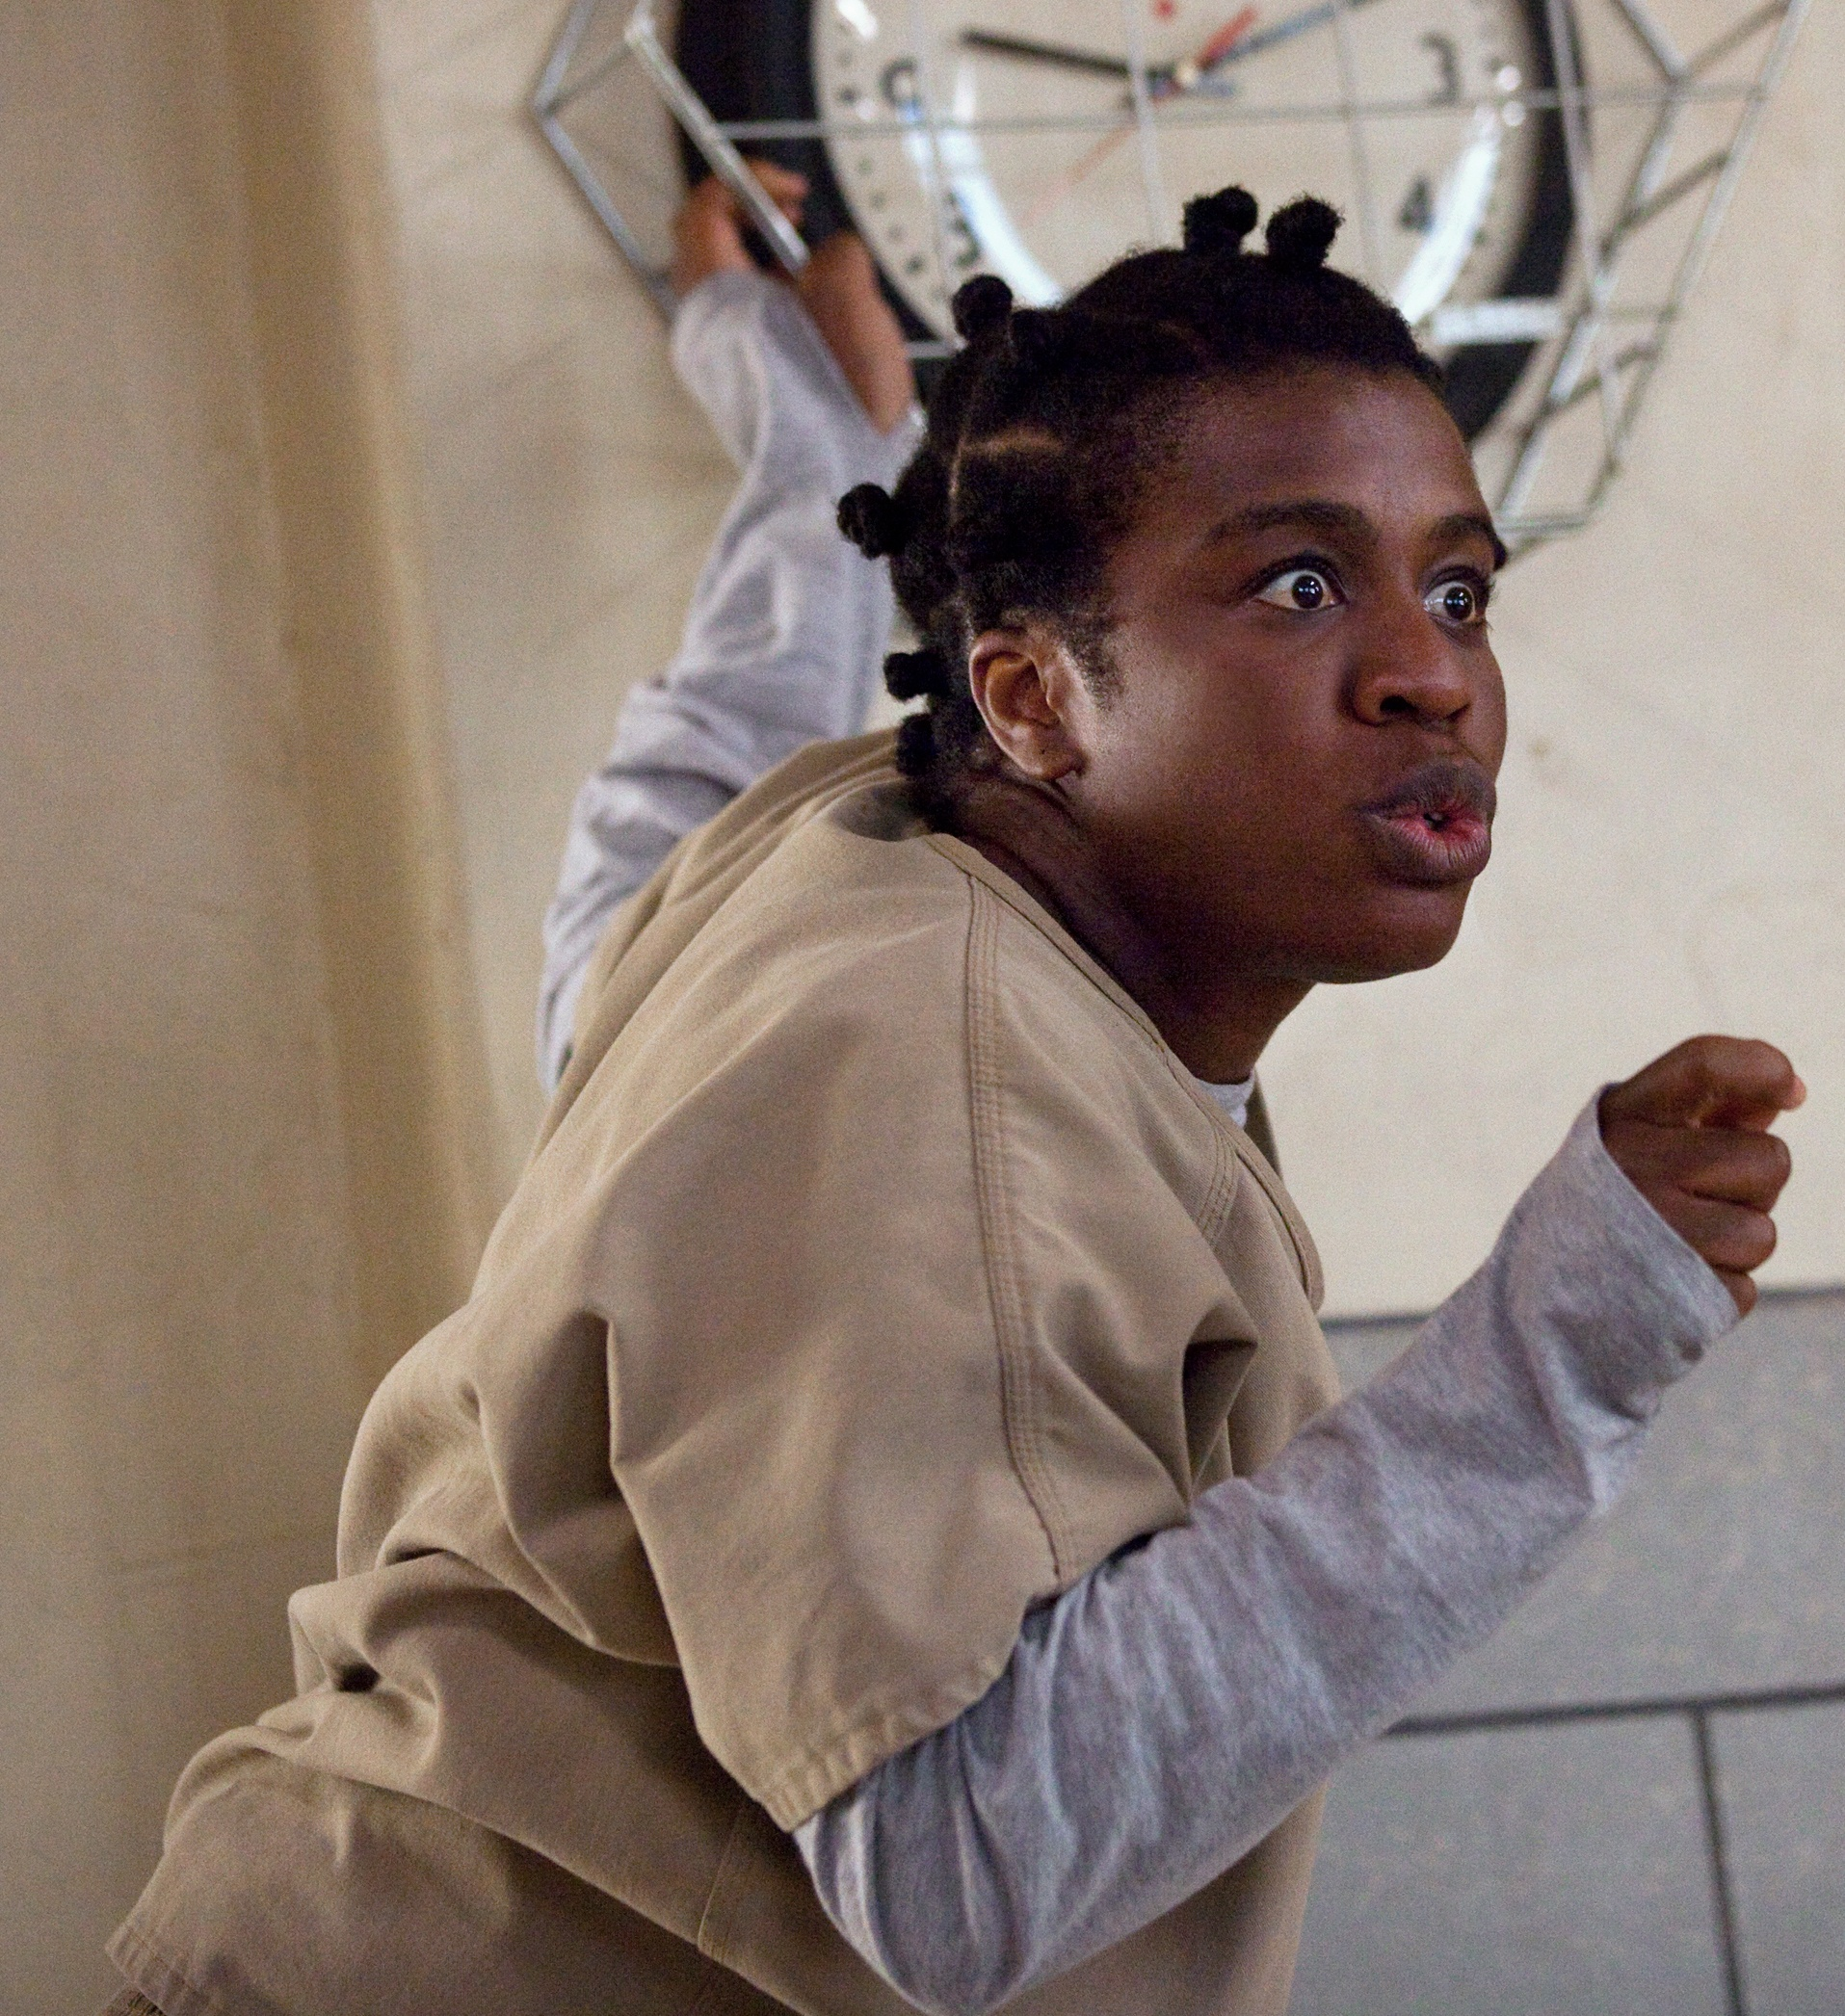 rs 197944 oitnb ps2 026 h 25 Things You Didn't Know About Orange Is The New Black